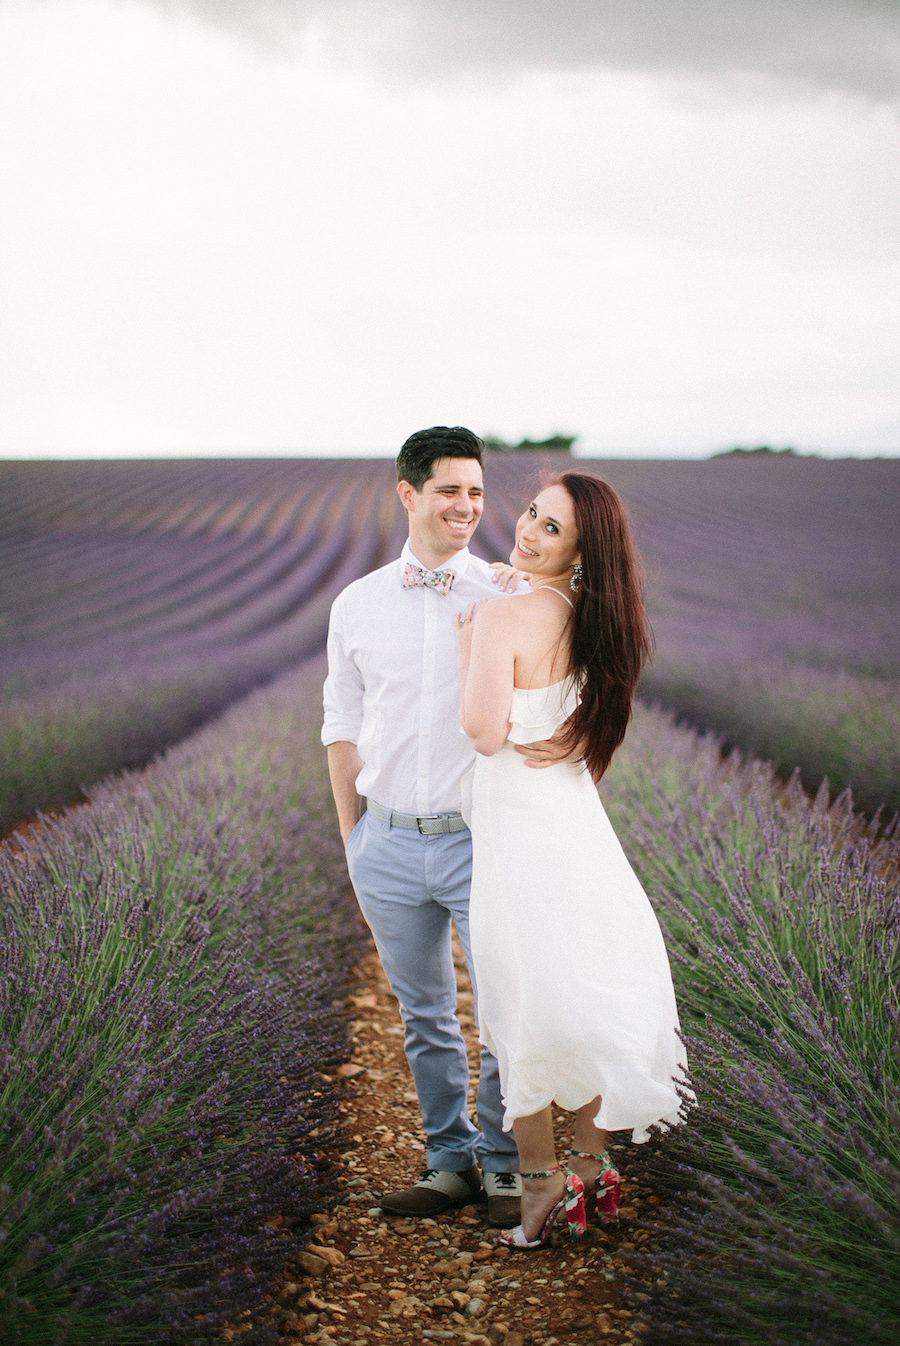 saya-photography-pre-wedding-provence-lavander-field-17.jpg